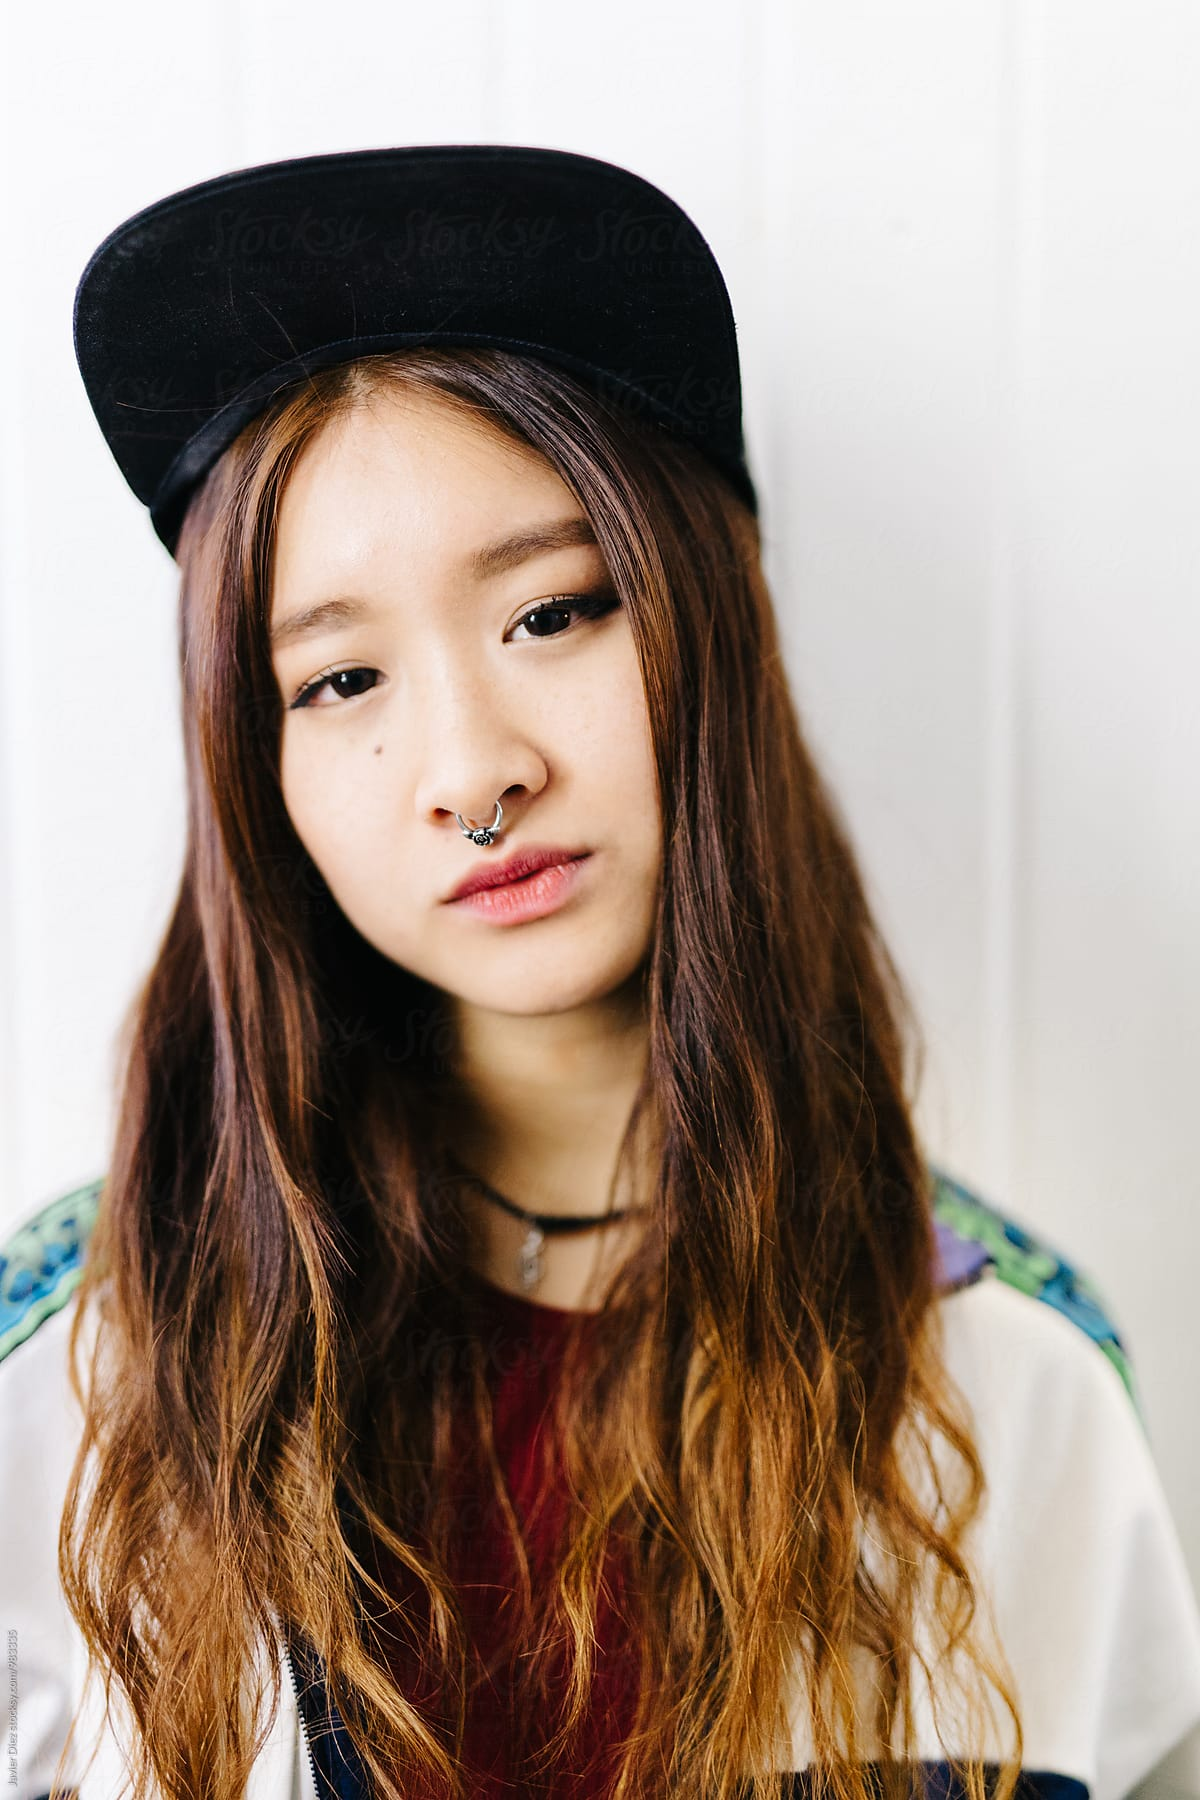 Asian Girl With Septum In Cap Looking At Camera  Stocksy -8960